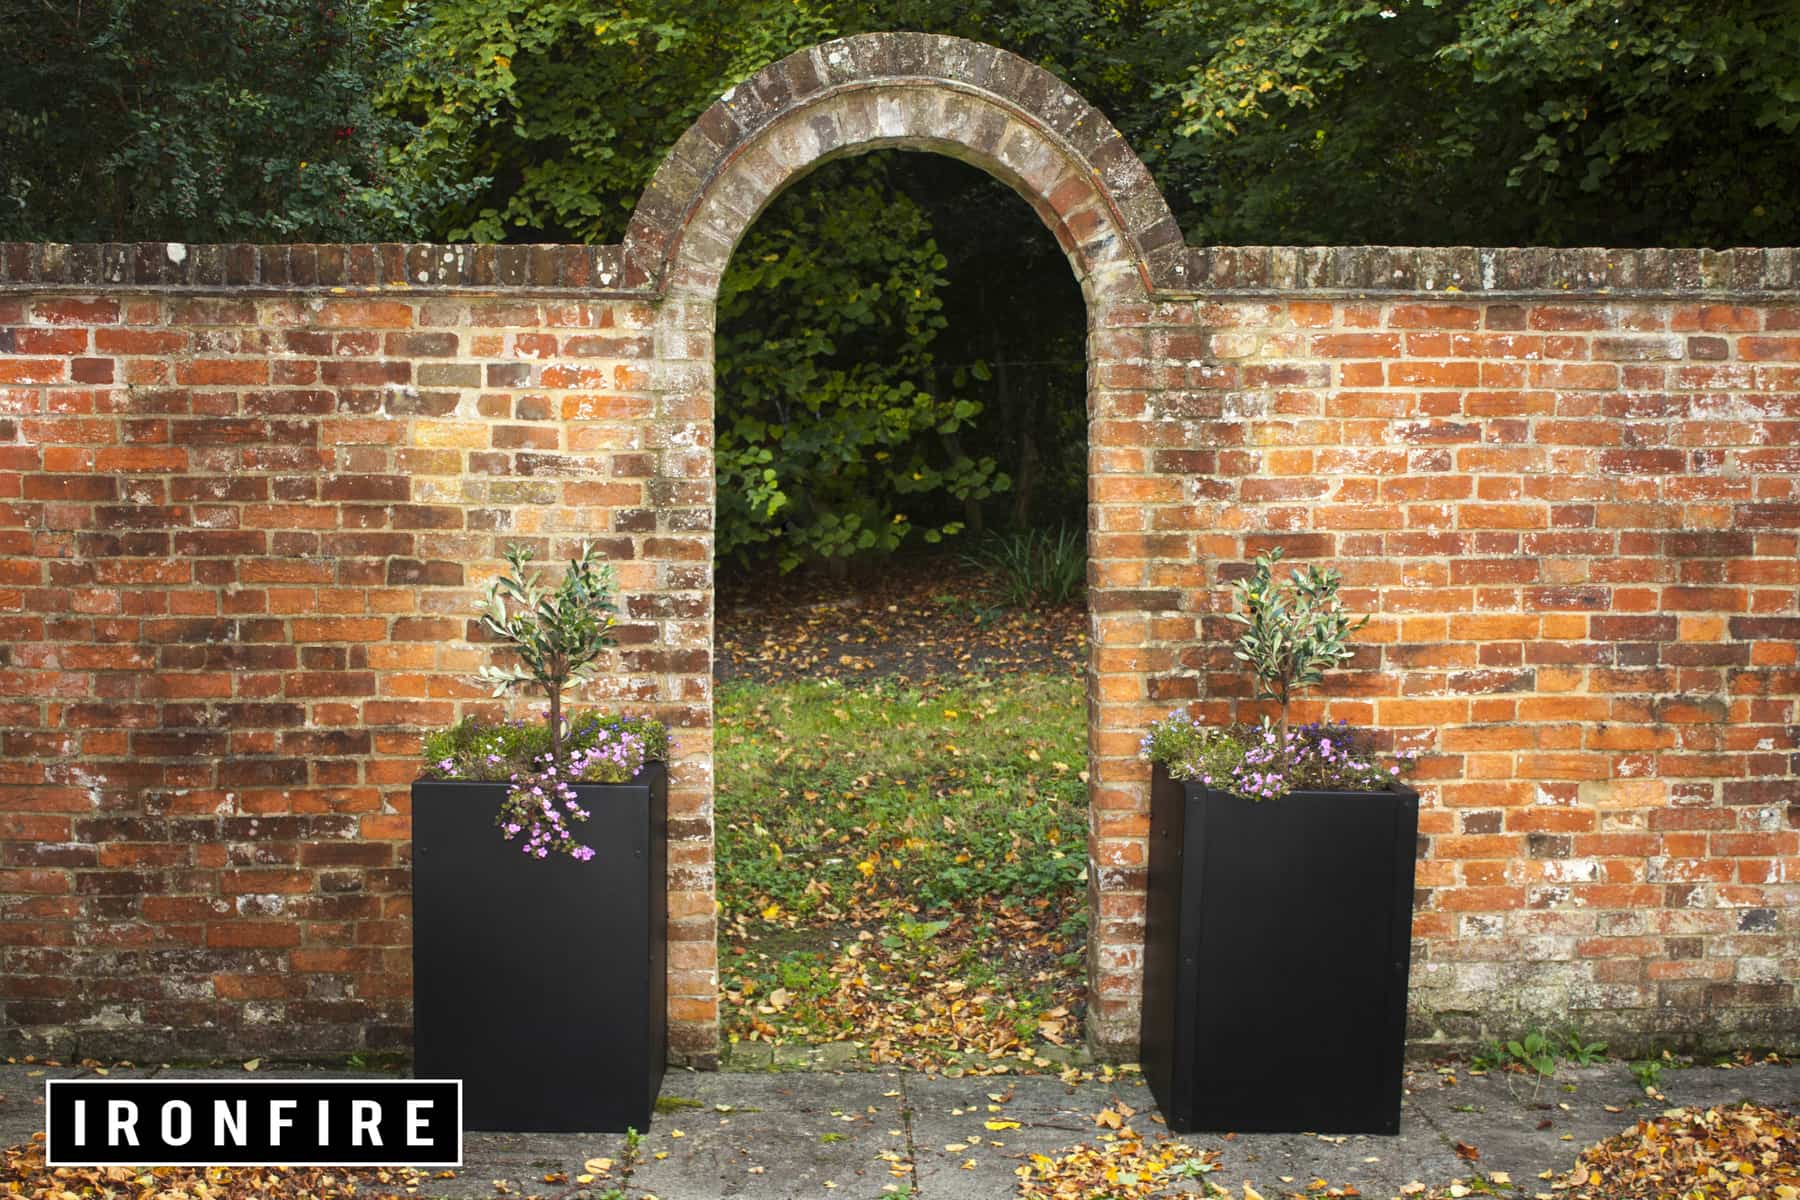 ironfire planters industrial style